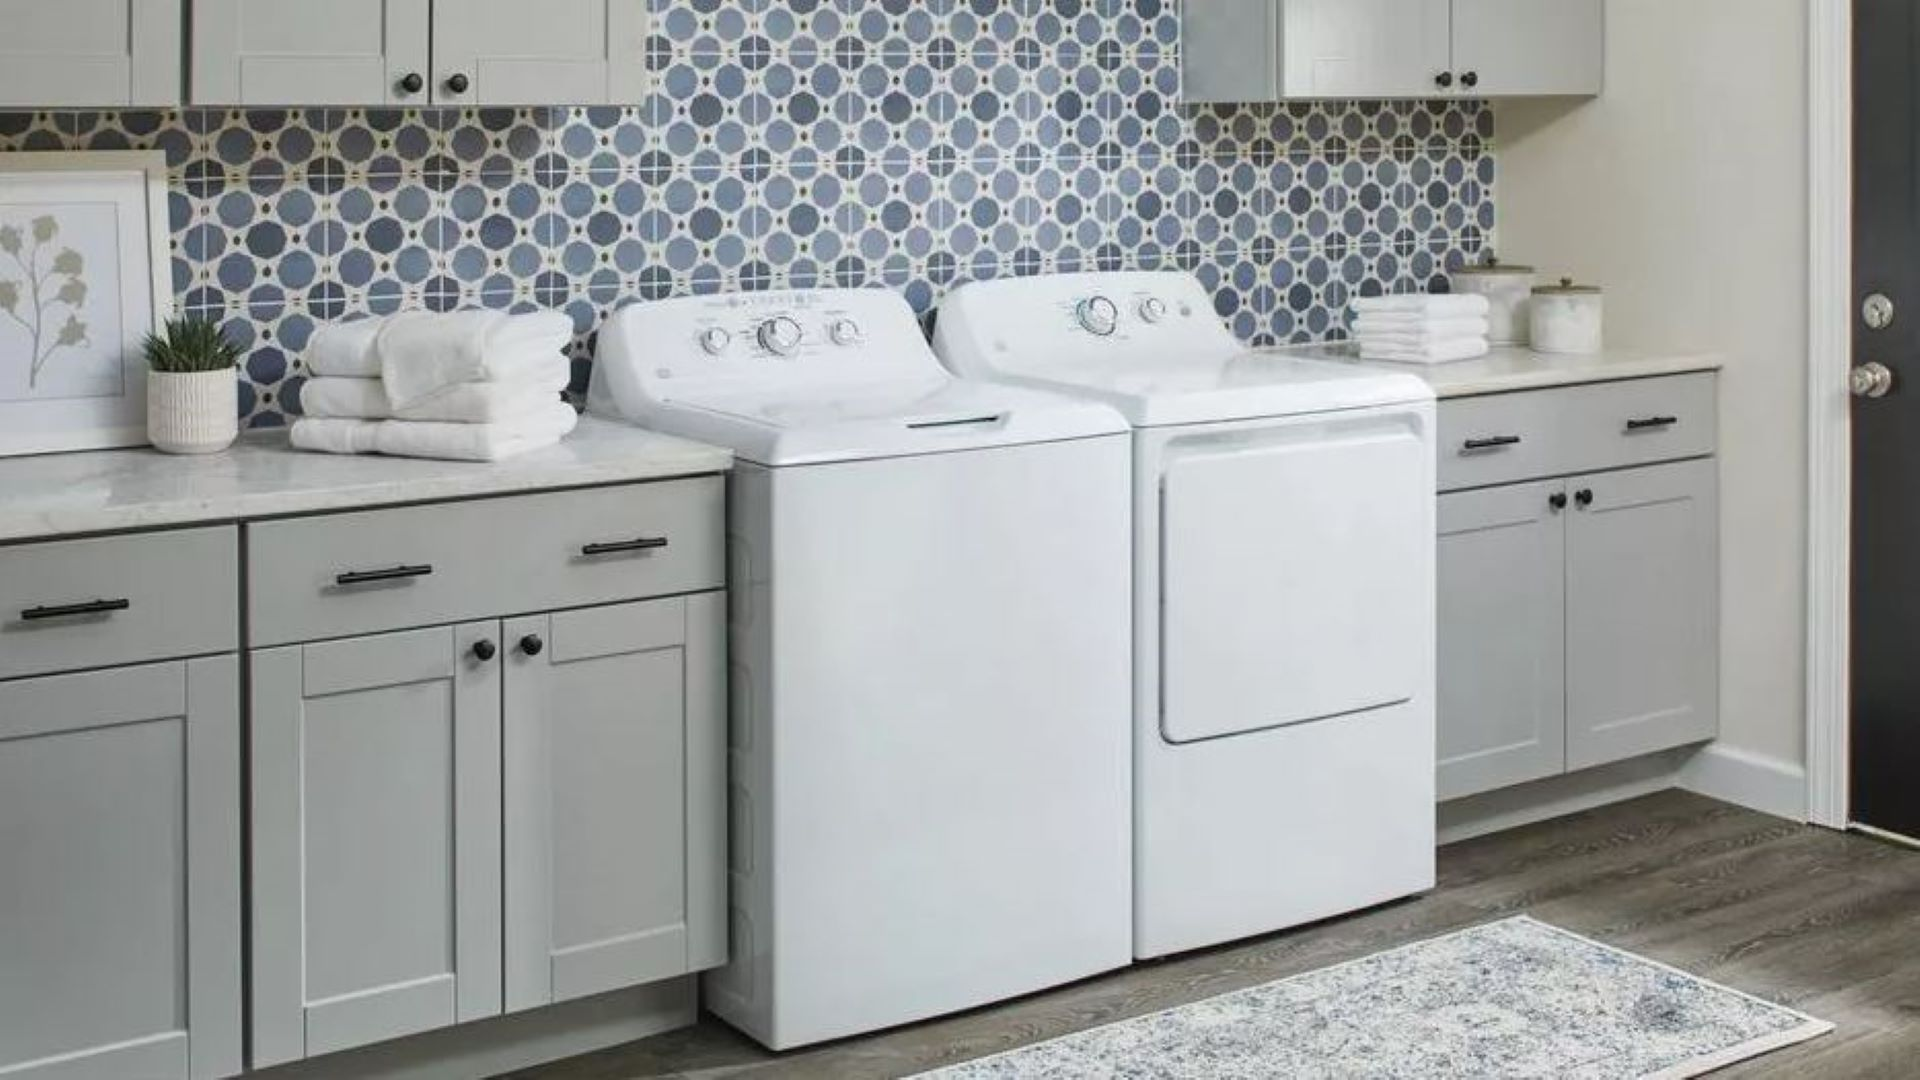 Best top load washer 29: GE, Samsung, and LG top-load washers